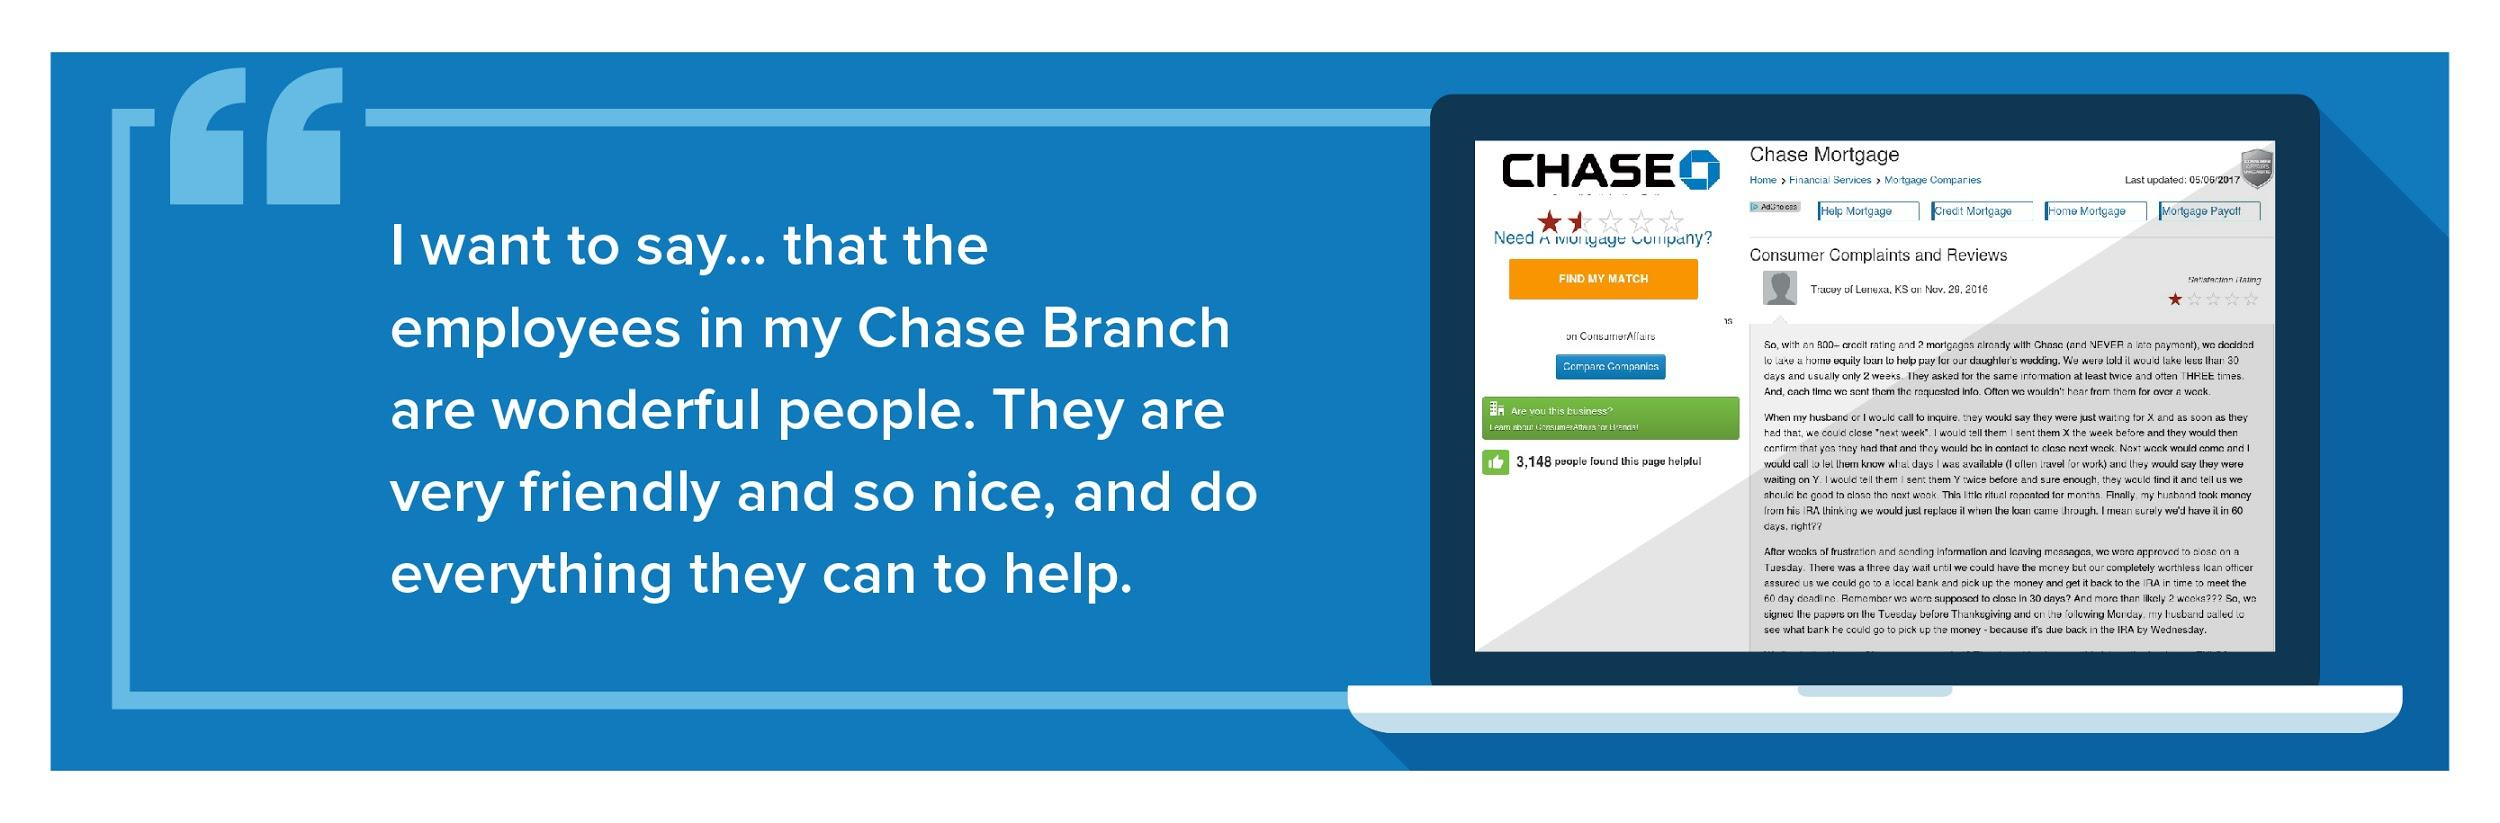 homeowner's information packet for chase ¡chase en español home loans, education finance, auto loans and credit cards, the site offers information on business banking, commercial banking and.